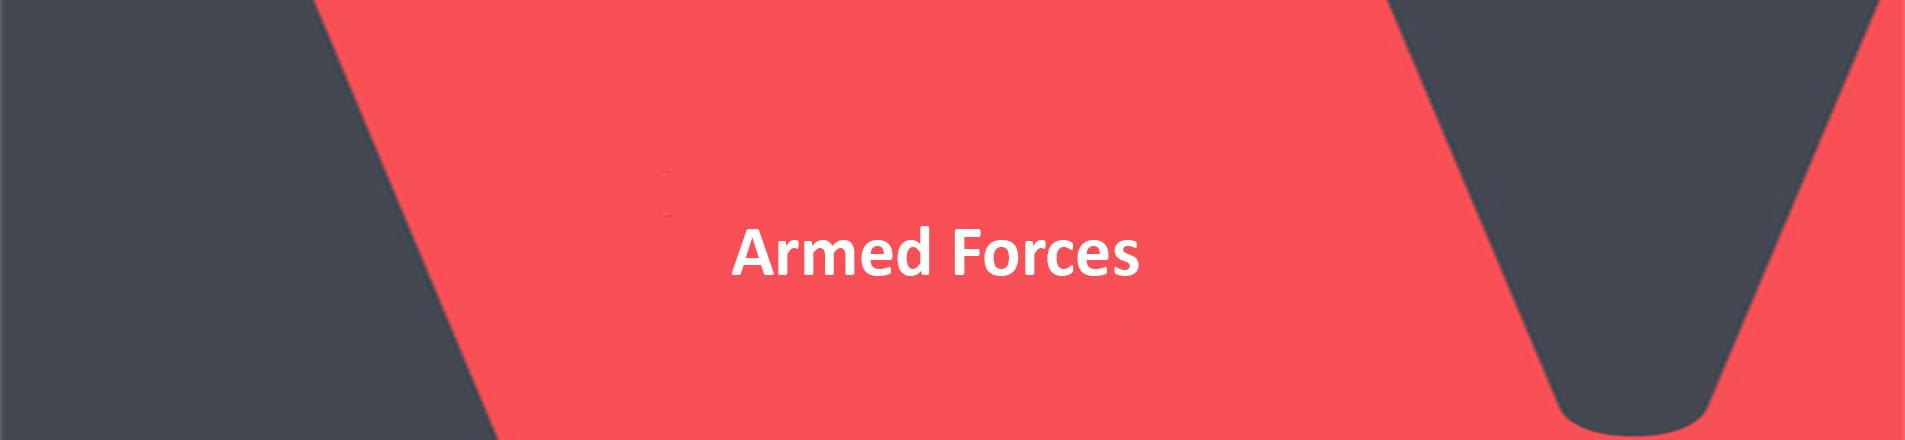 """VERCIDA logo banner.  Red background  with words """"Armed Forces"""" in white text."""